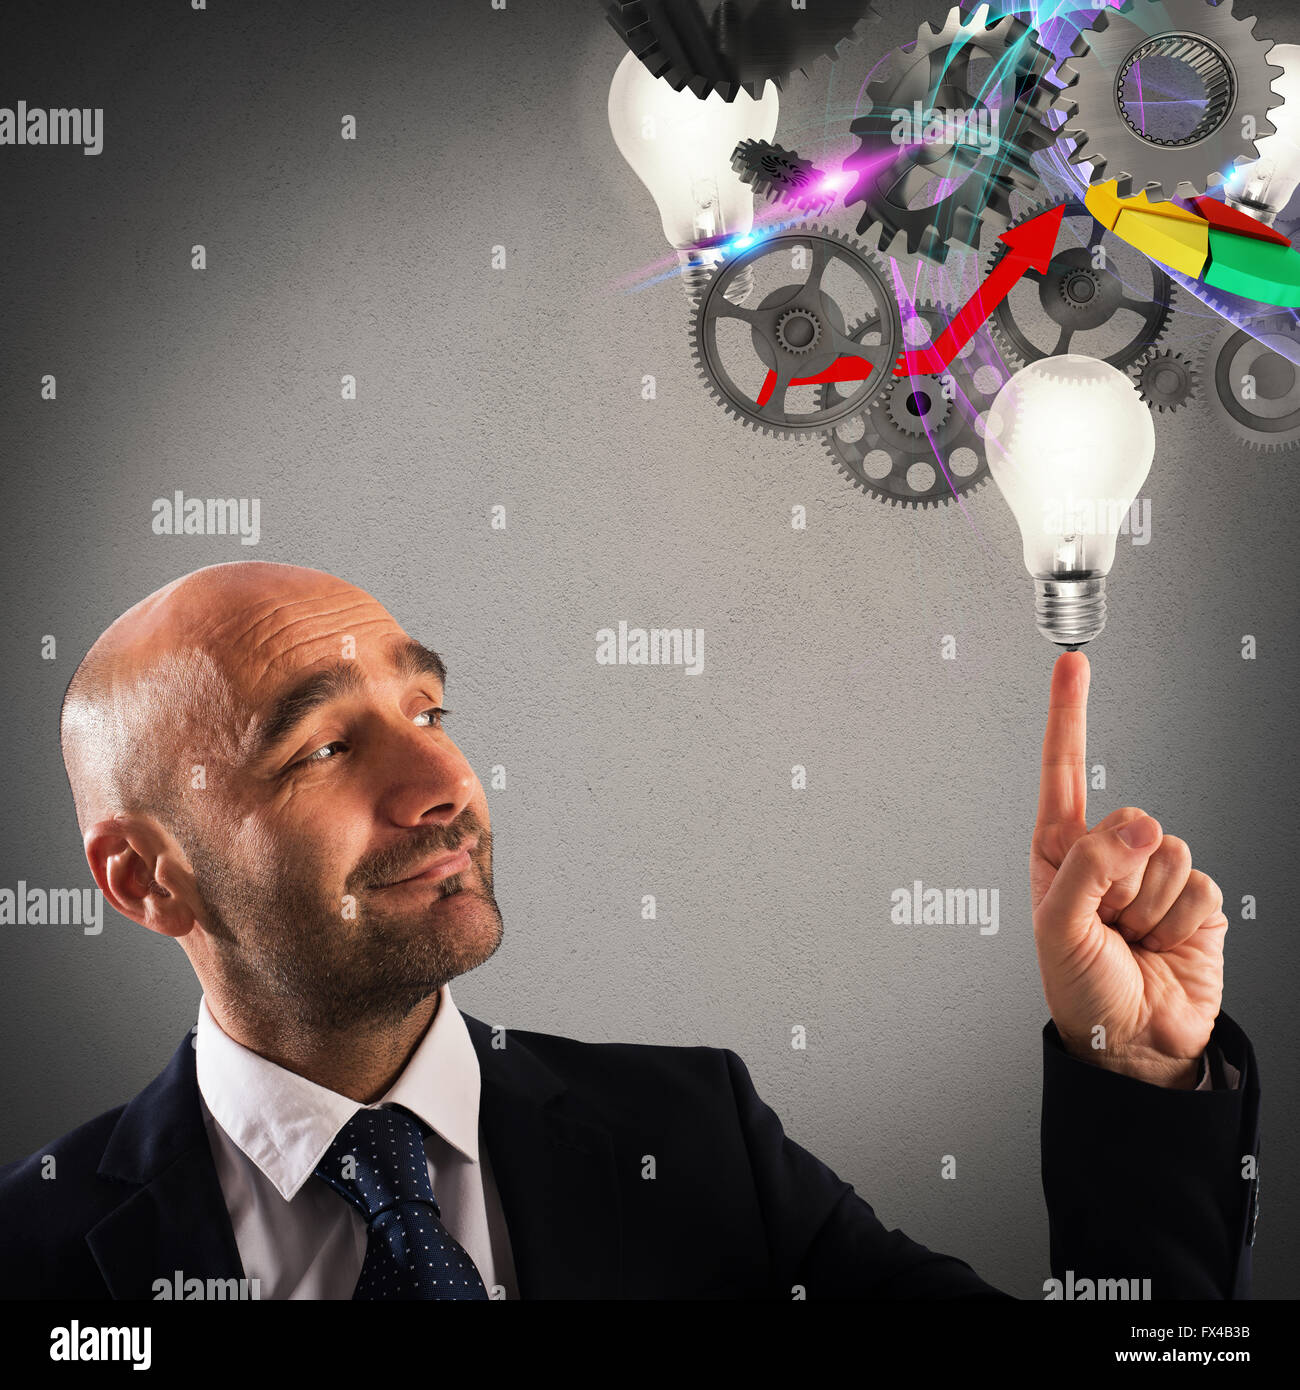 Develop an idea - Stock Image